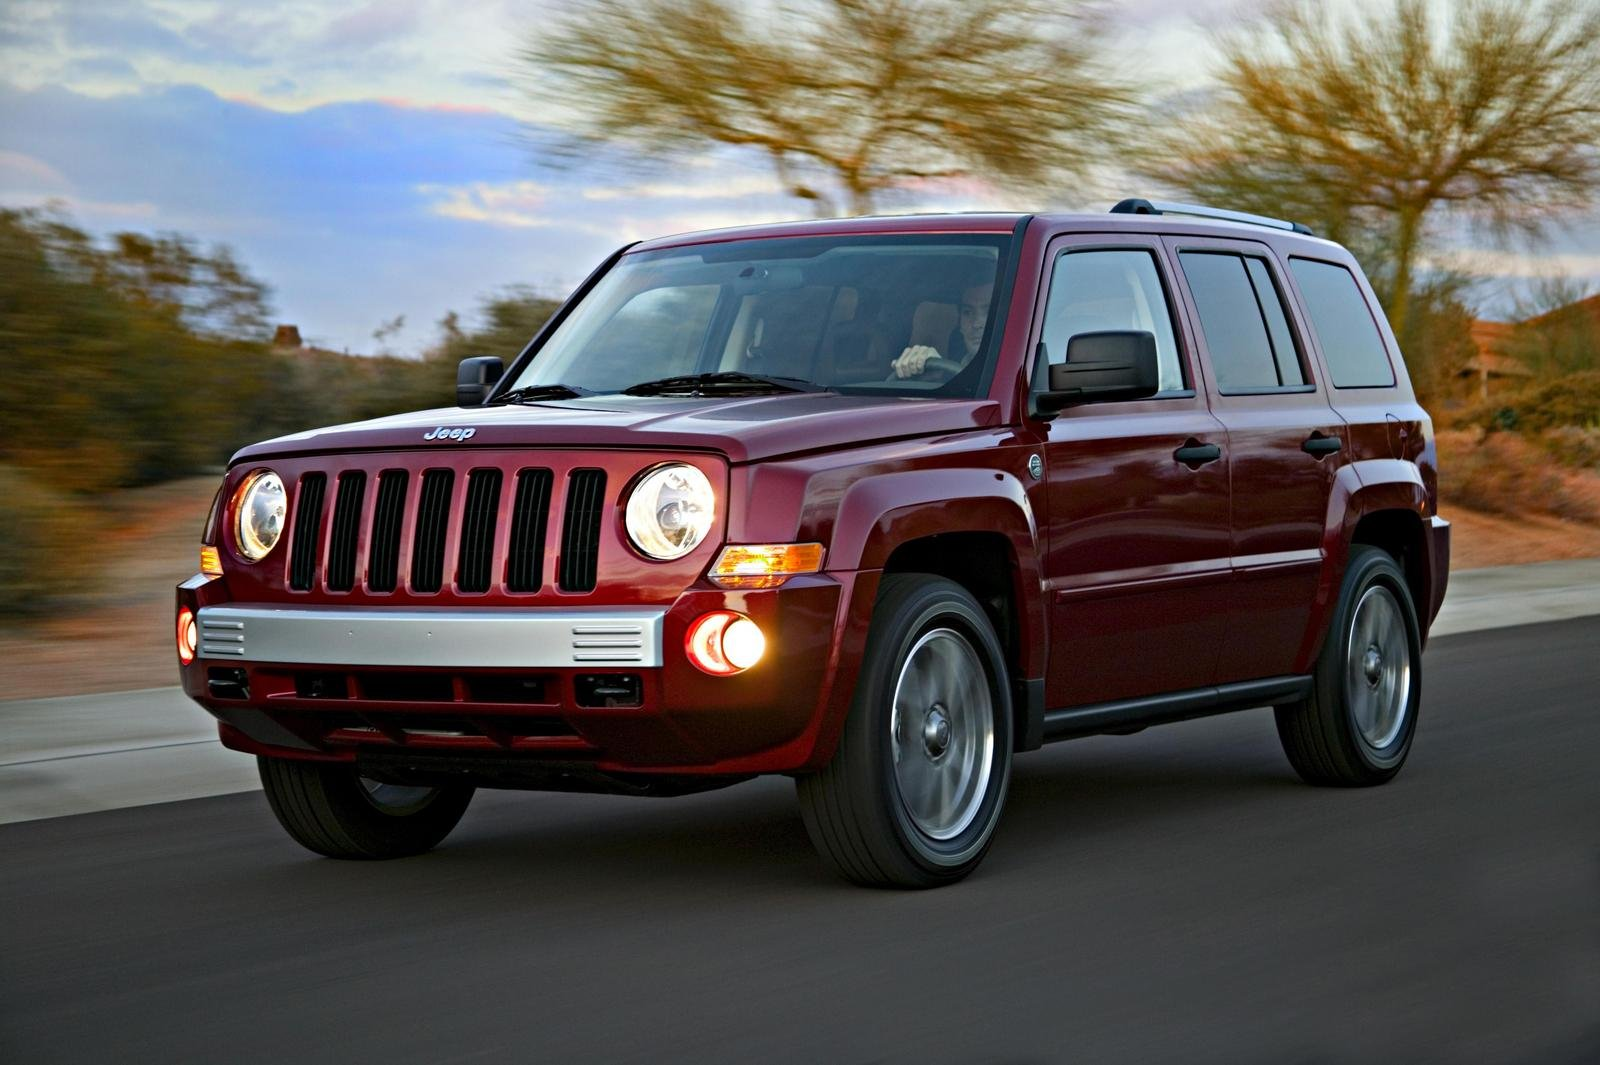 2007 Jeep Patriot Production Starts News - Top Speed